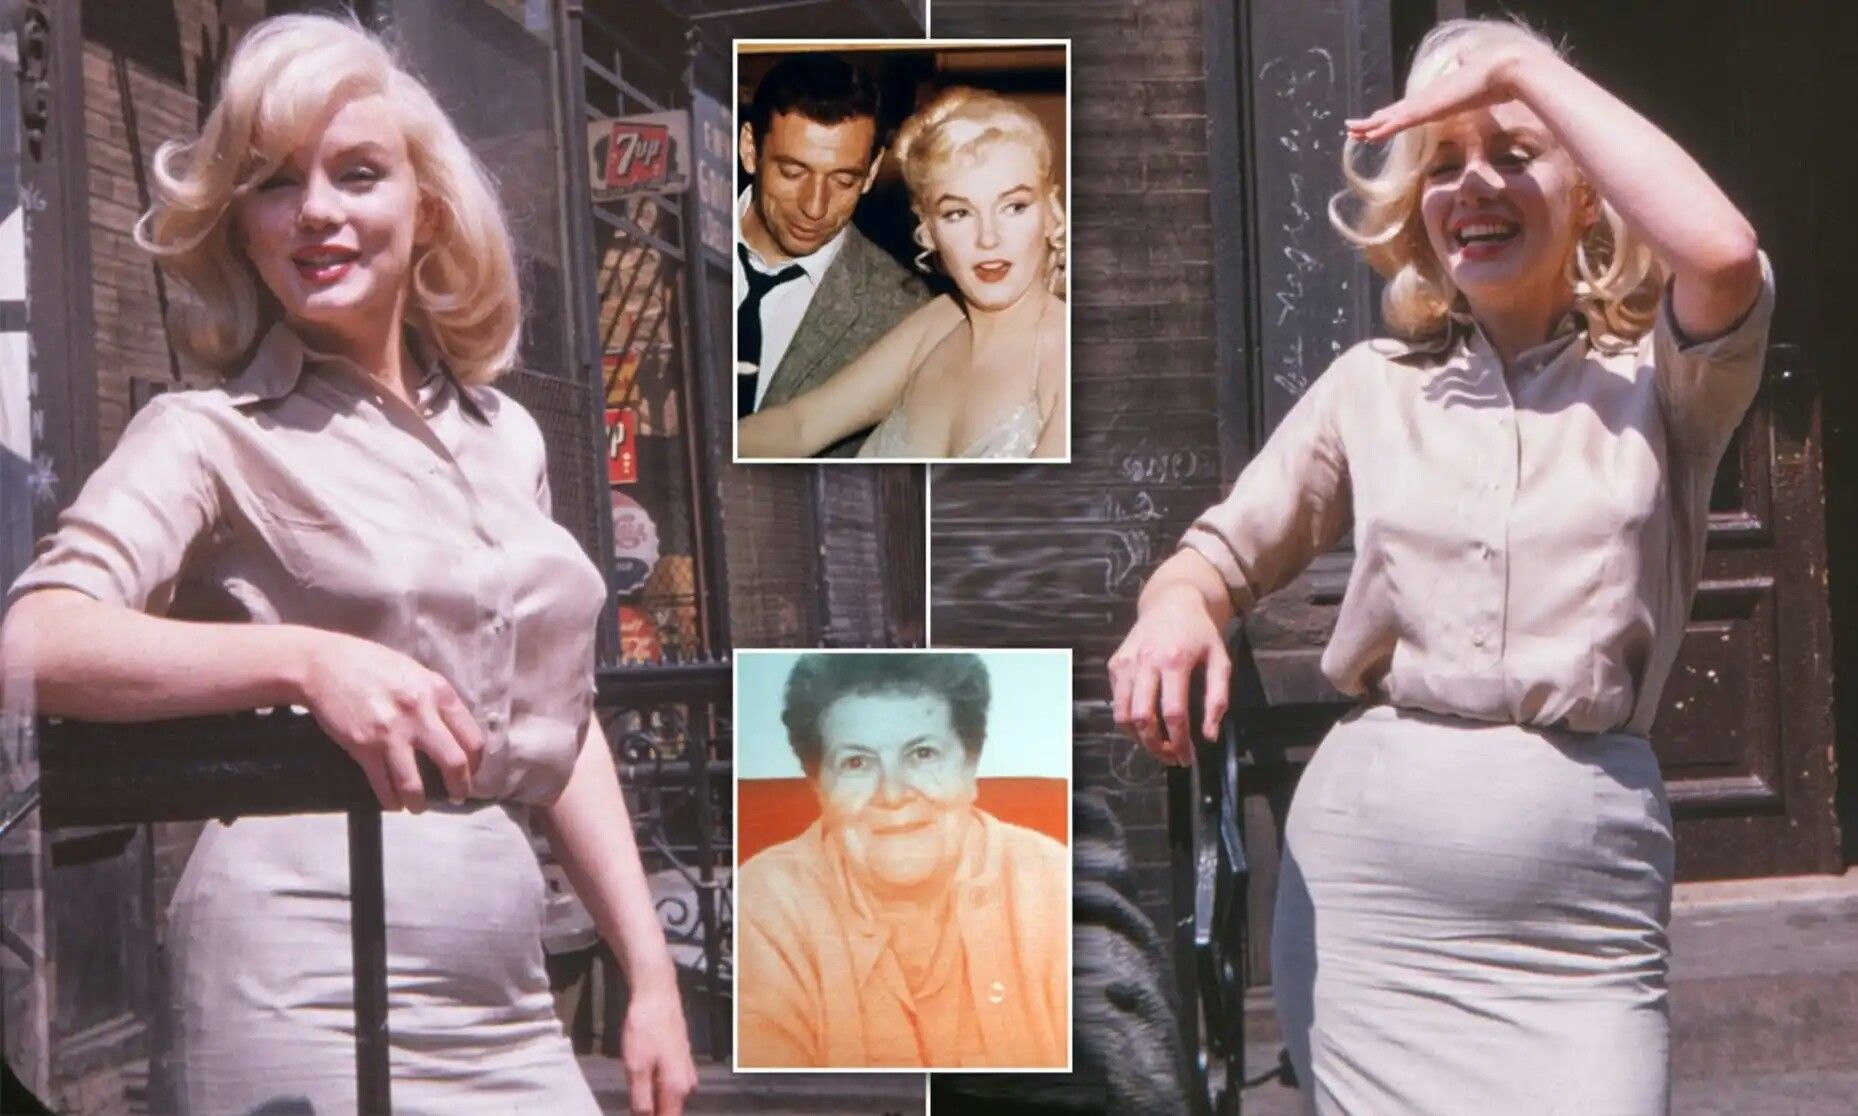 Pin by No Name on Marylin Monroe (With images) Marilyn